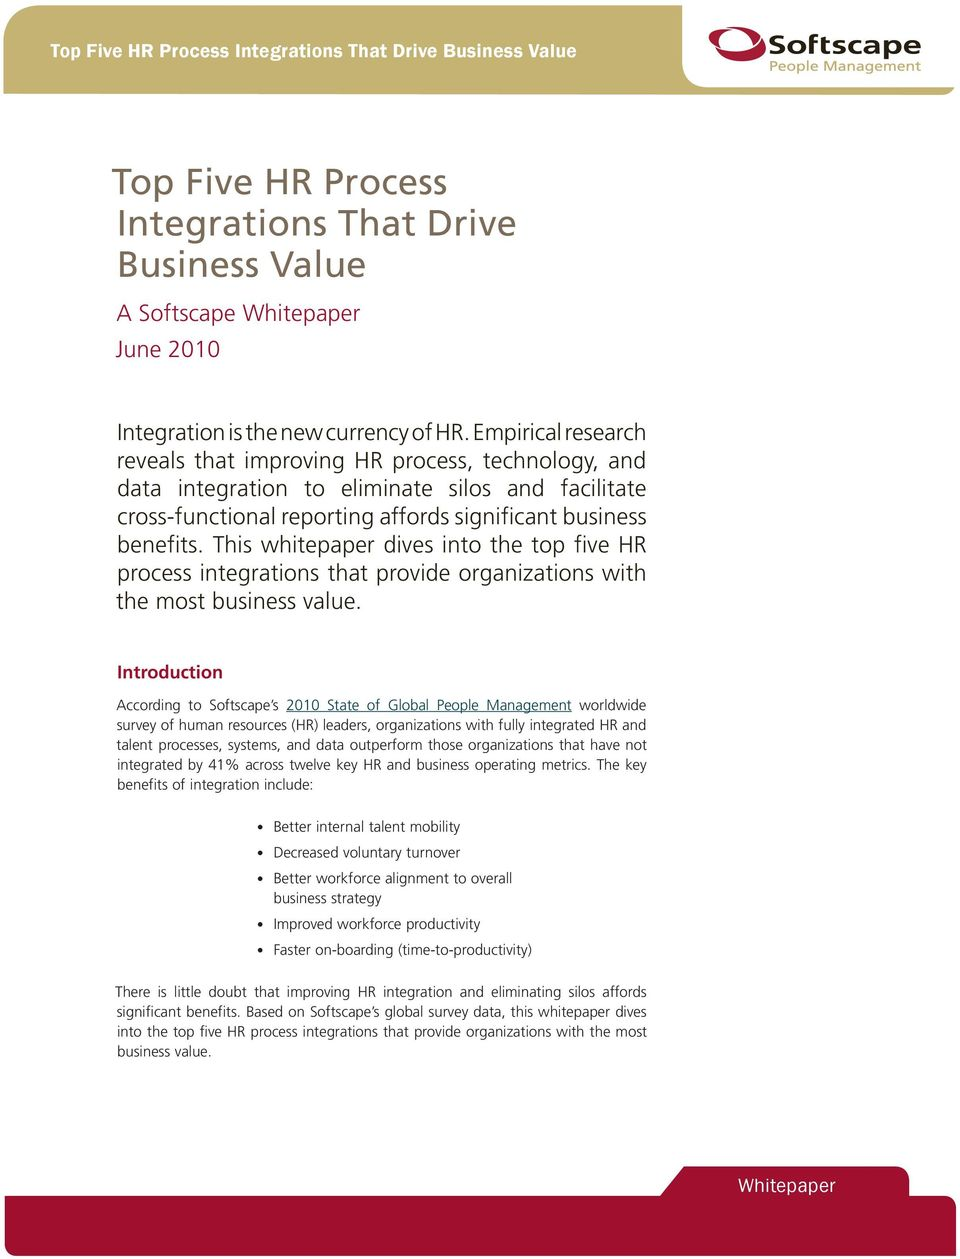 This whitepaper dives into the top five HR process integrations that provide organizations with the most business value.